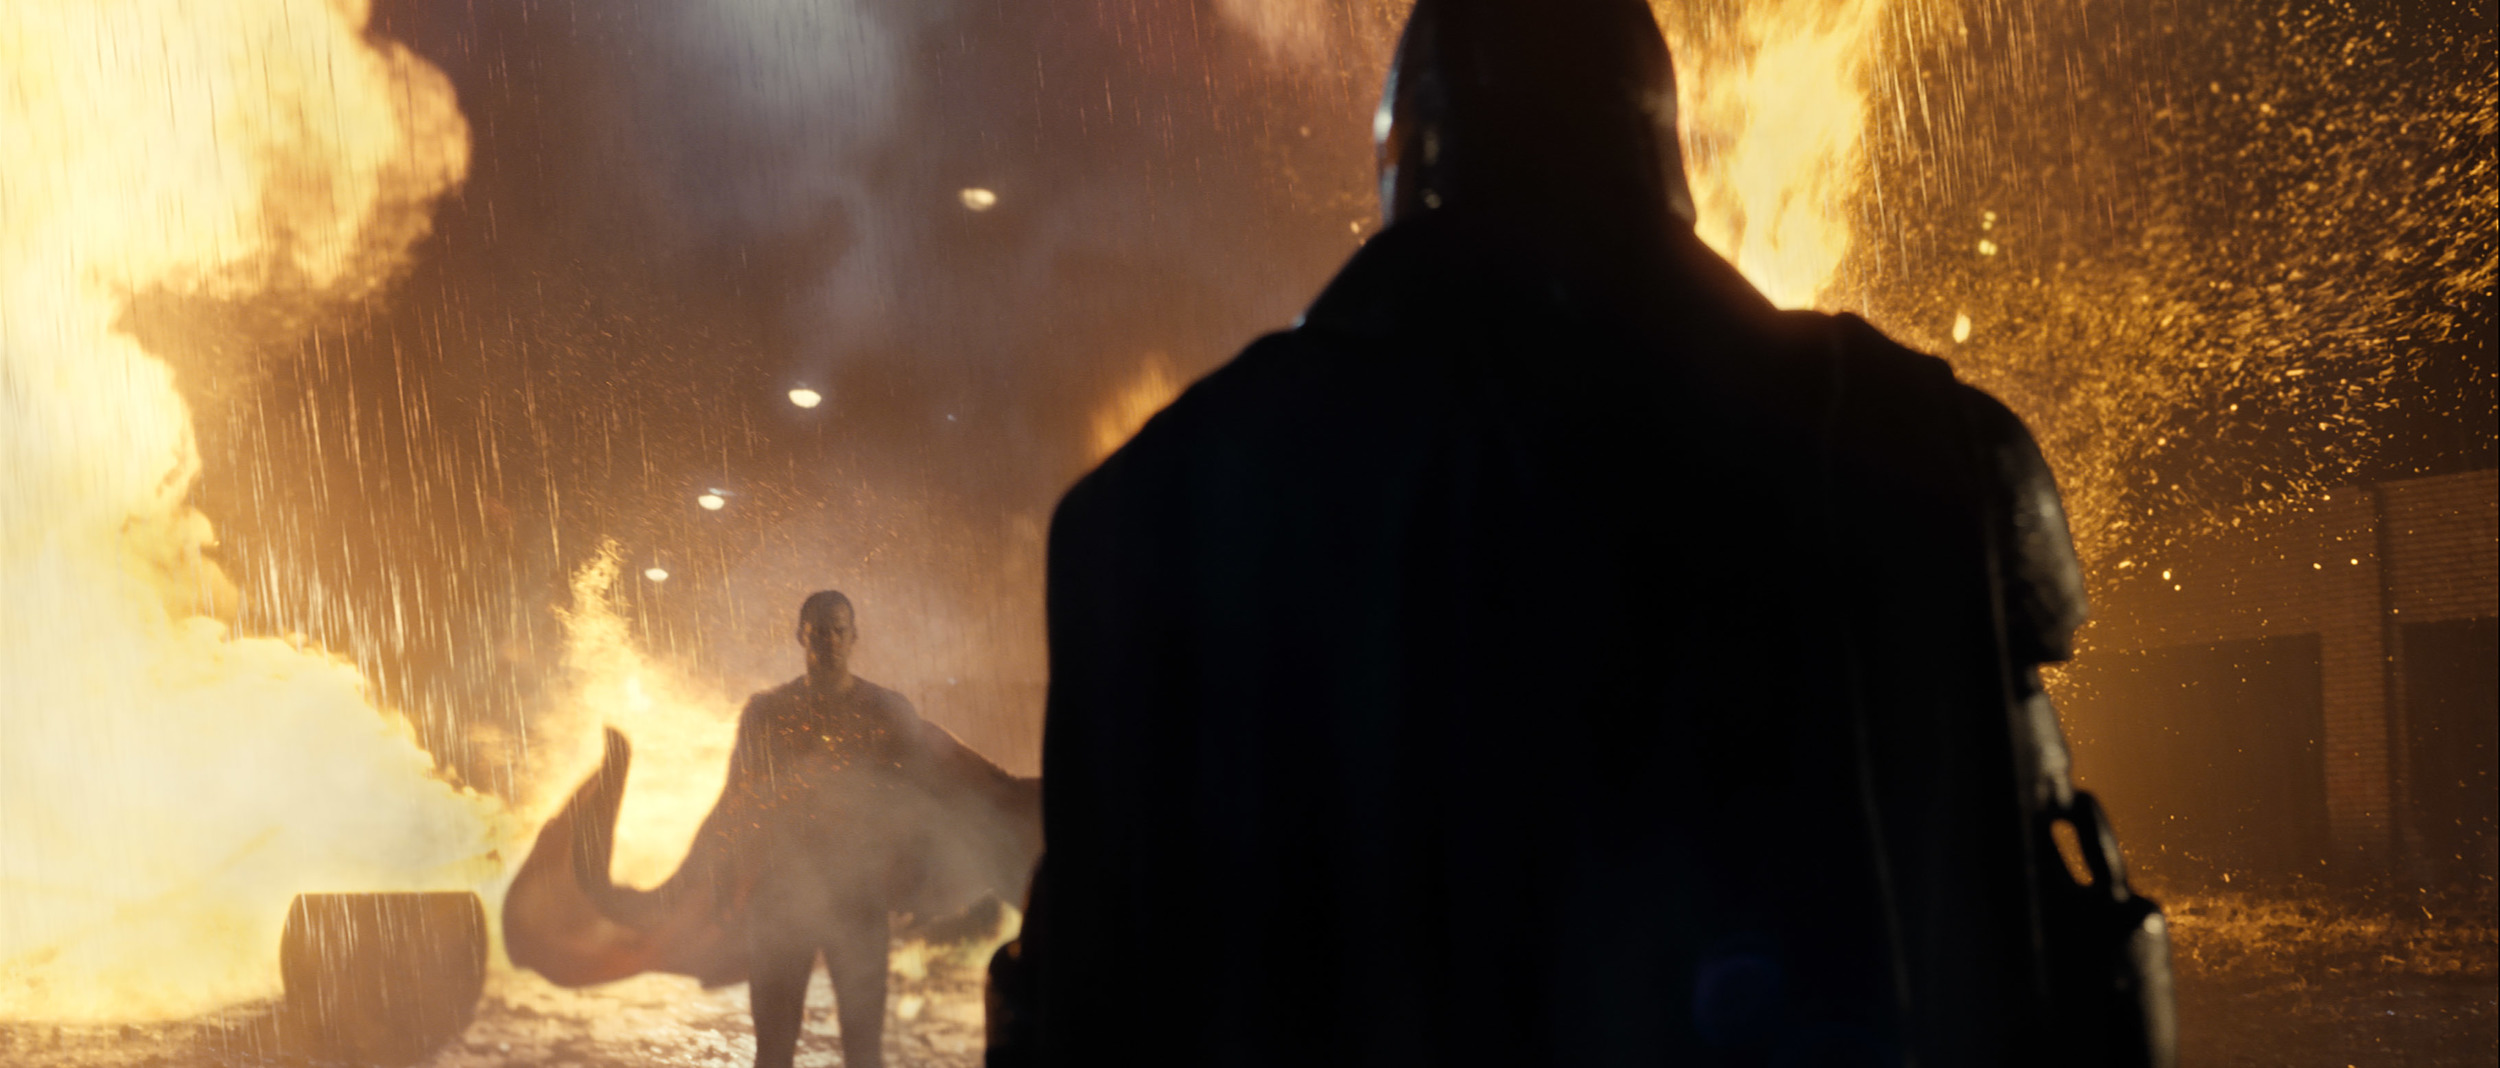 batman-v-superman-dawn-of-justice-movie-image.jpg